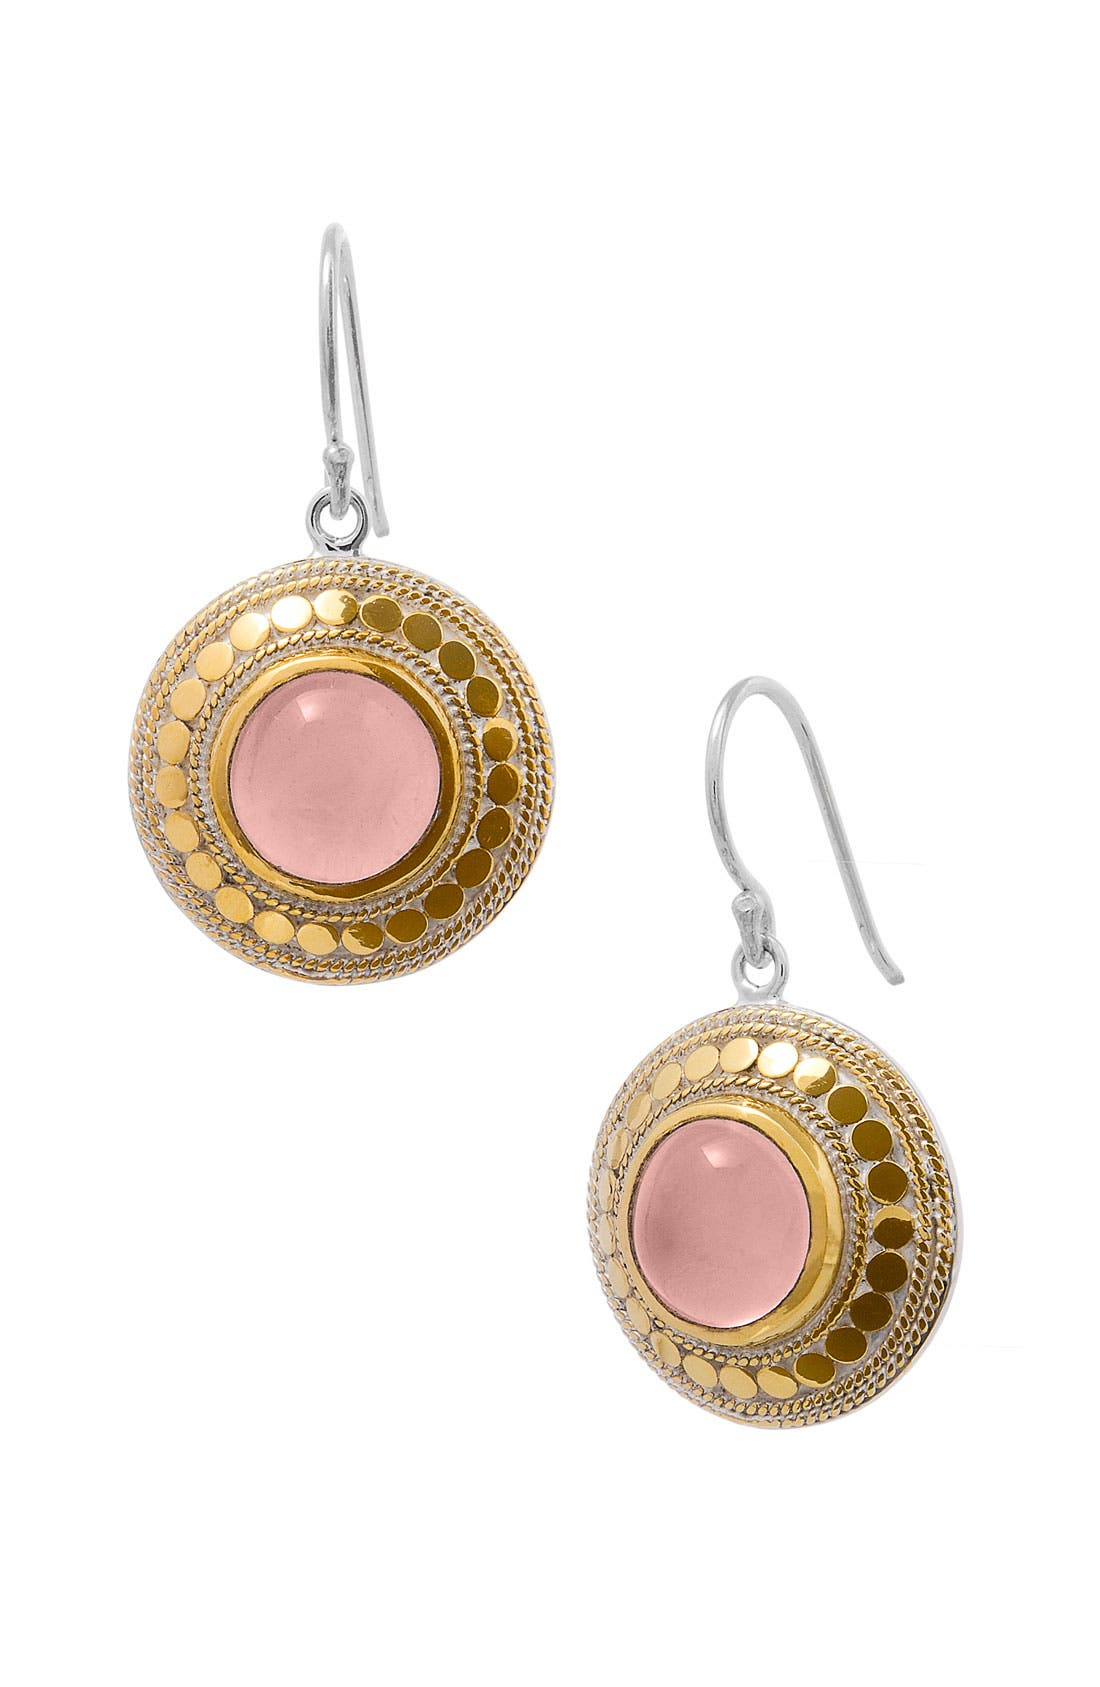 Main Image - Anna Beck 'Gili Stone' Drop Earrings